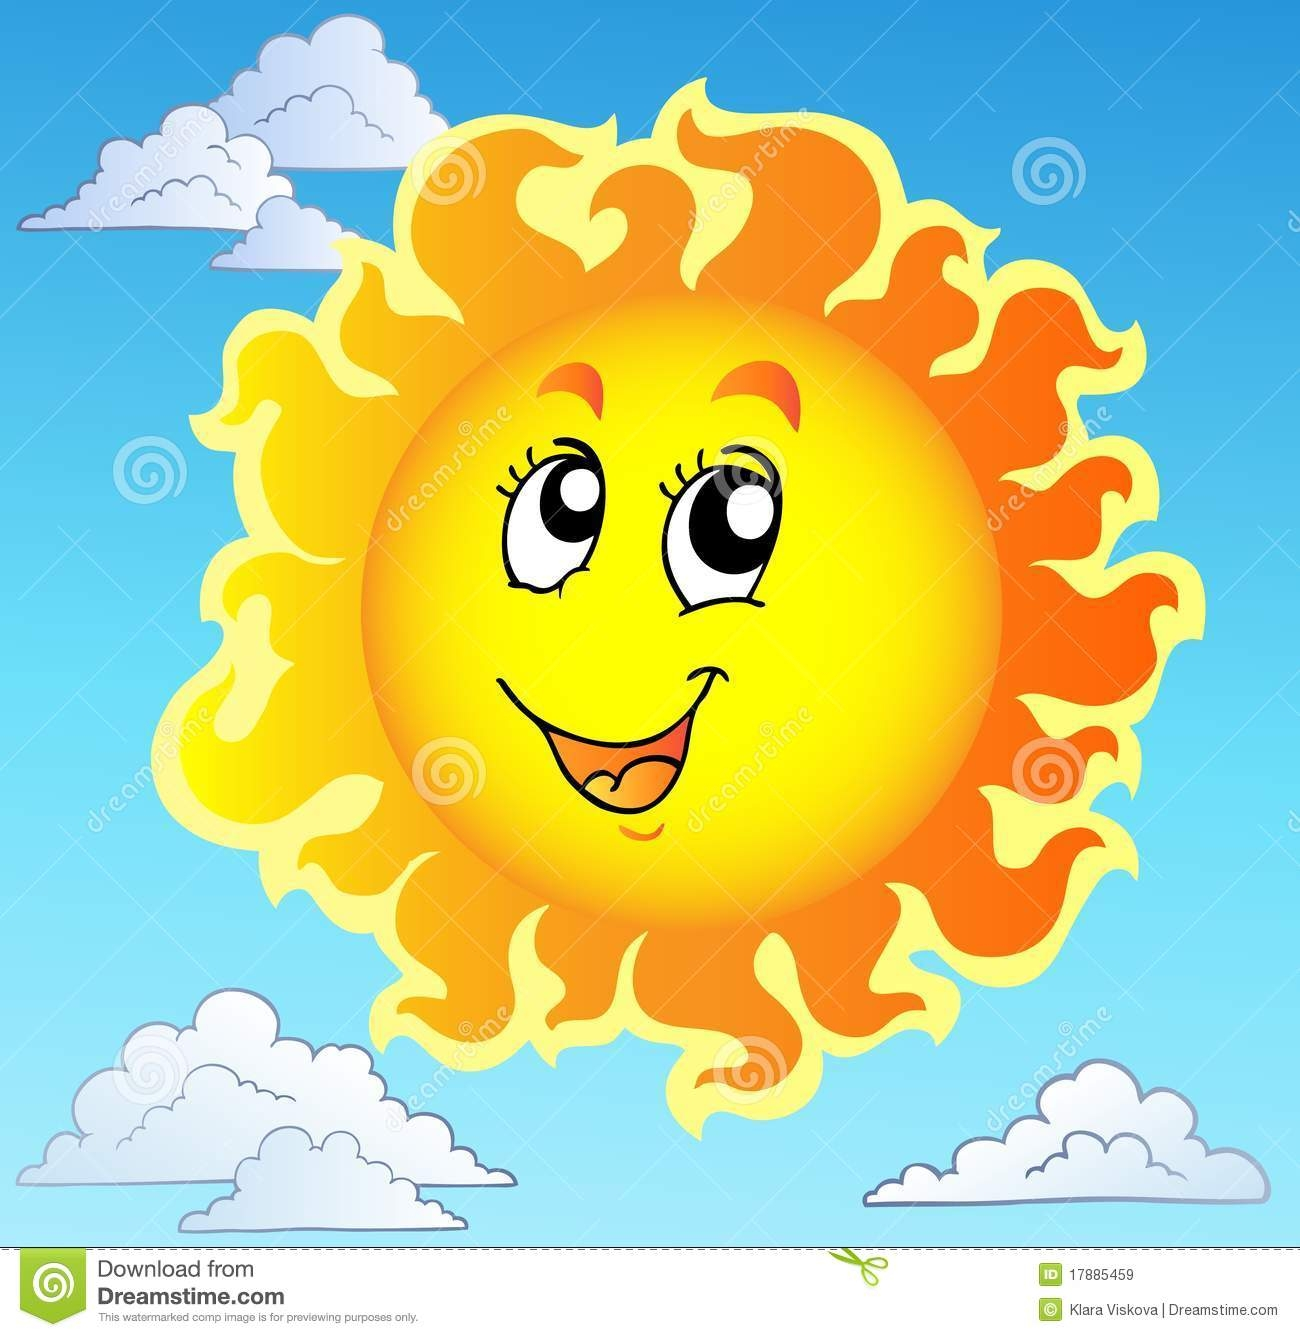 Sun in the sky clipart 7 » Clipart Station.